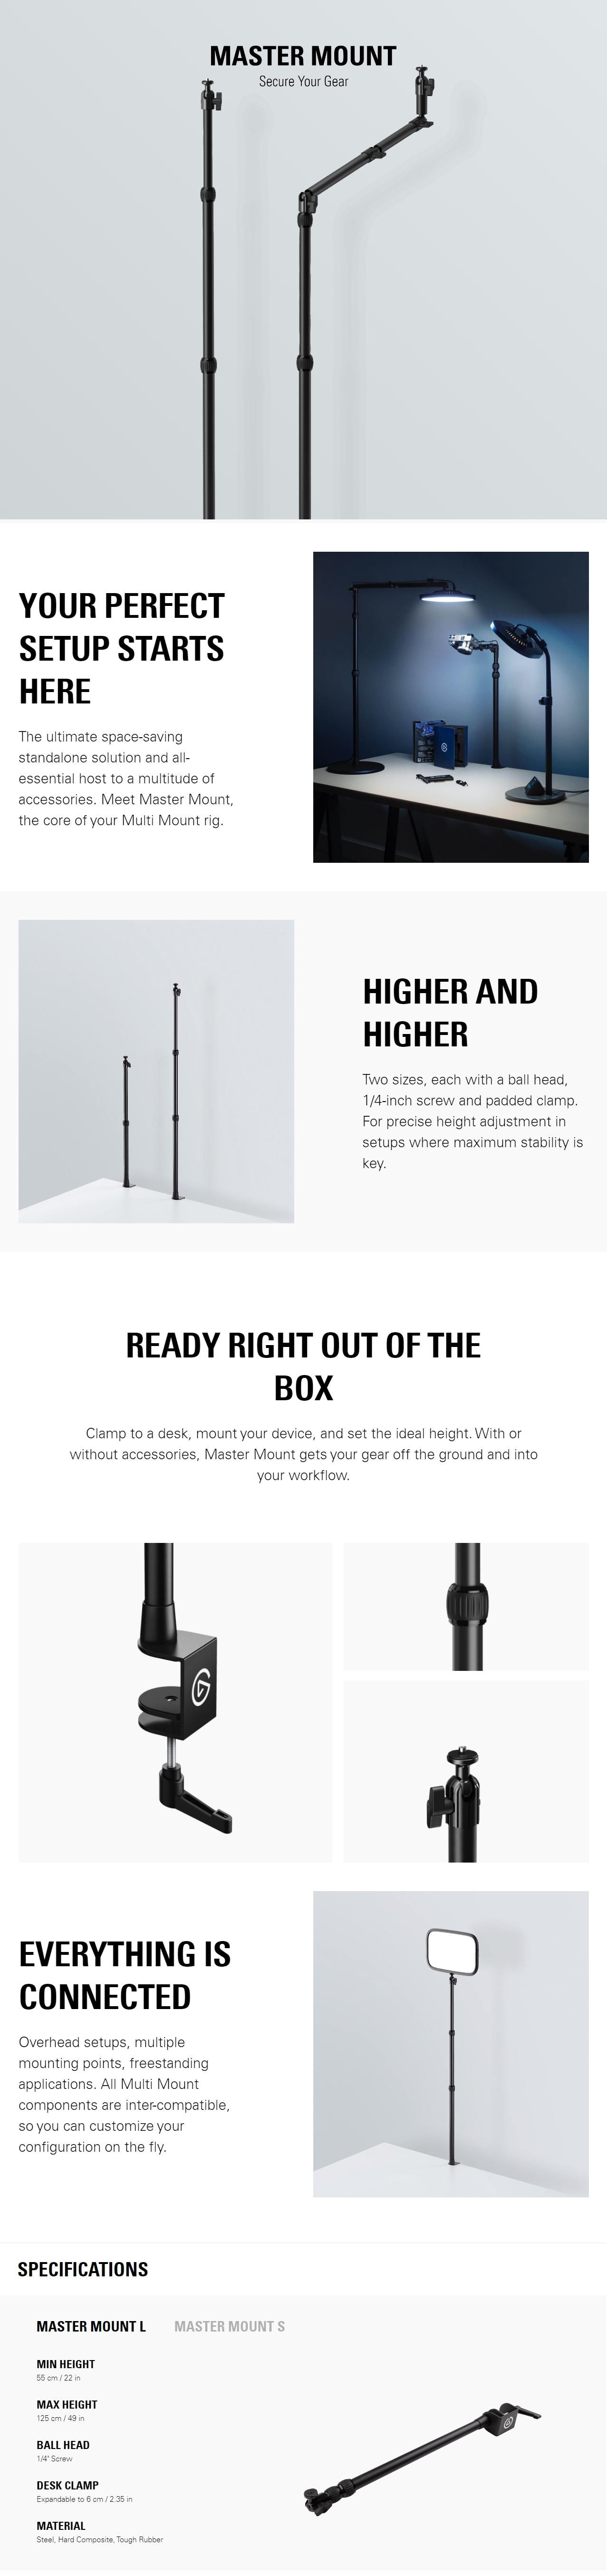 A large marketing image providing additional information about the product Elgato Multi Mount System - Master Mount Large - Additional alt info not provided